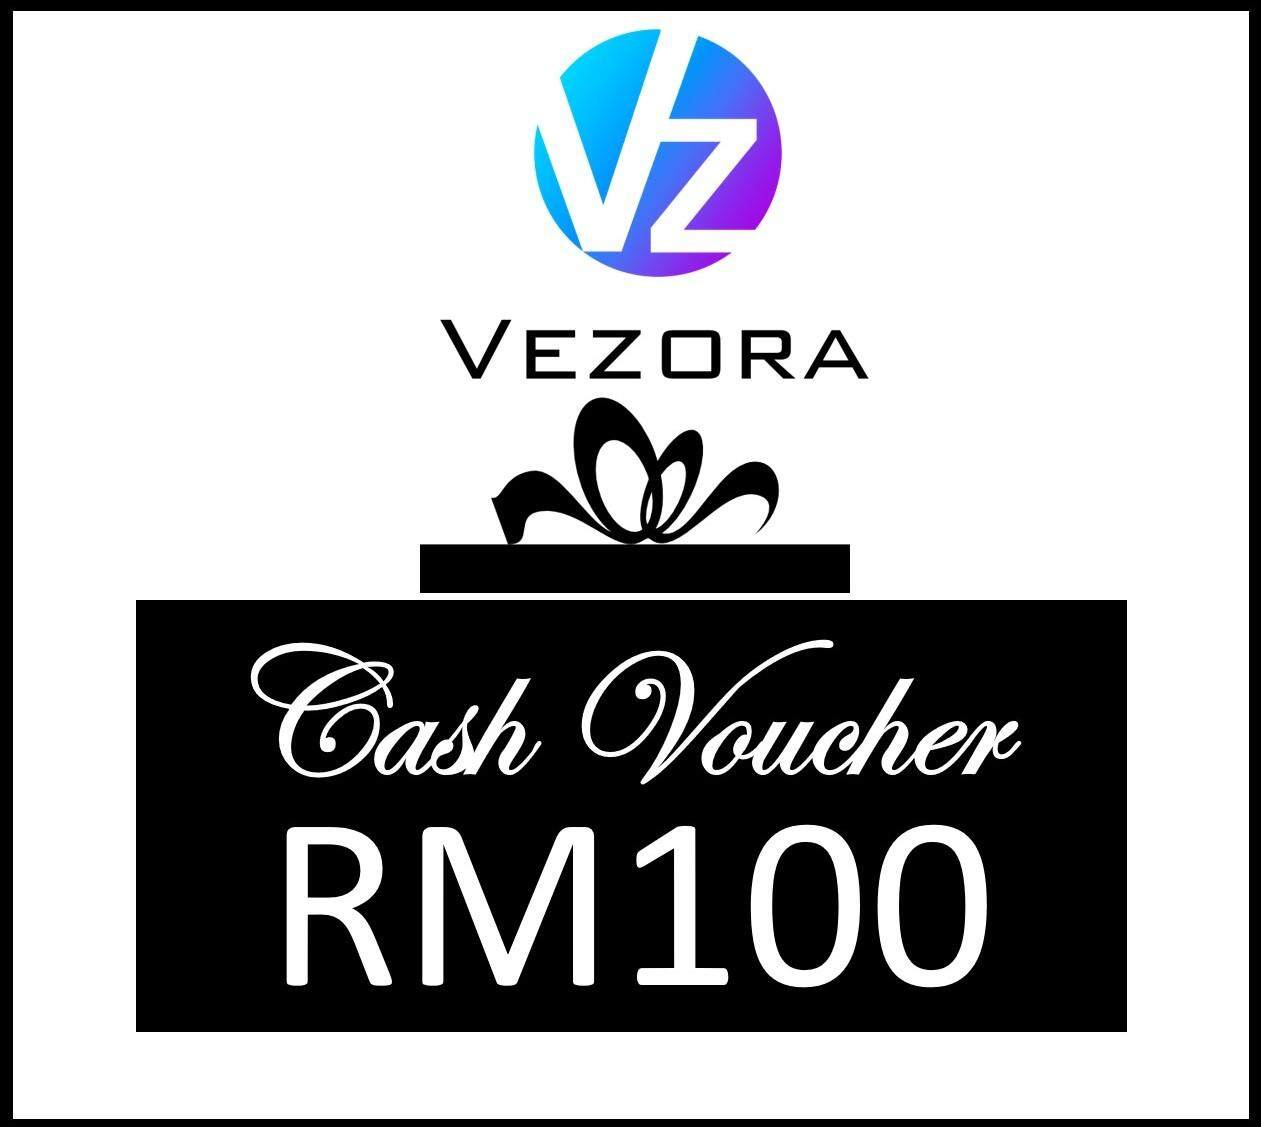 RM100 CASH VOUCHER  Professional Food Photography / Food Recipe/ Food Menu  /